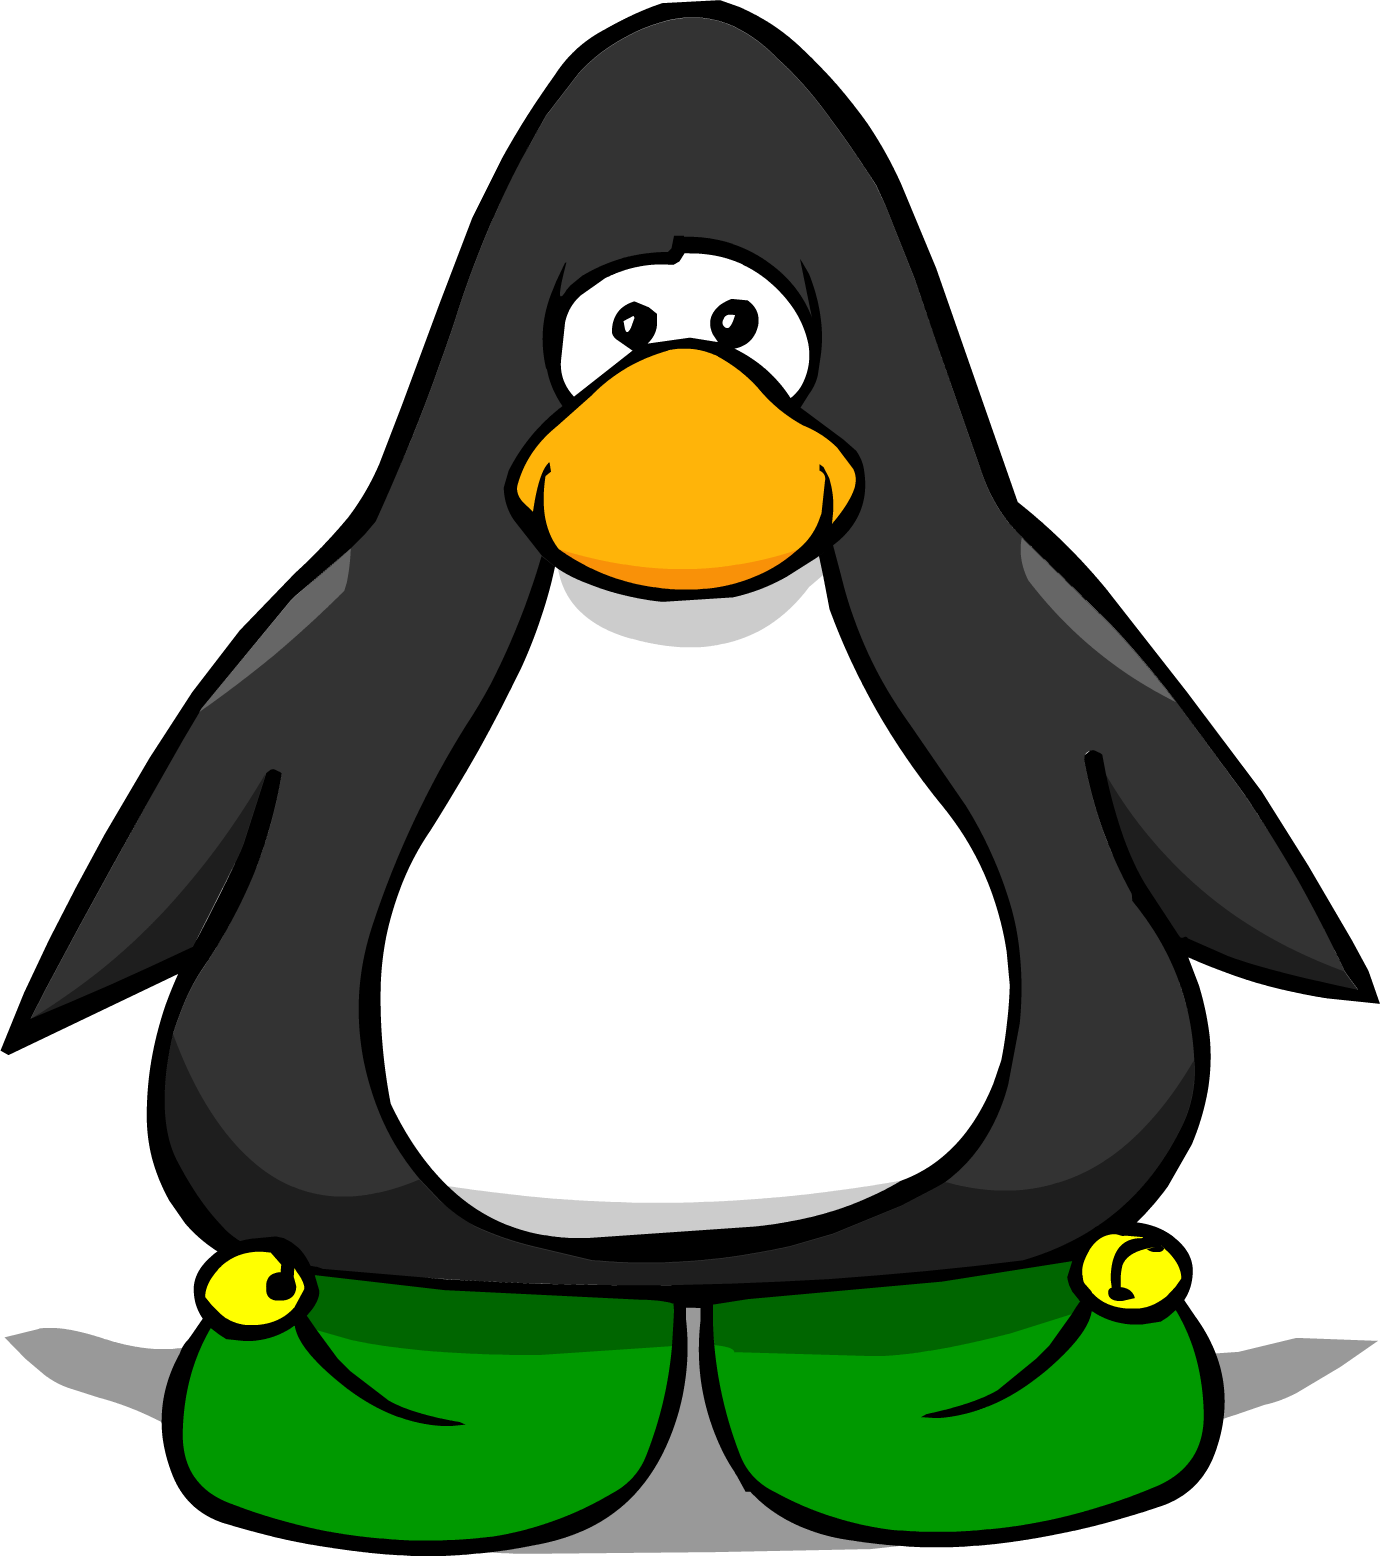 Elf shoes png. Image from a player